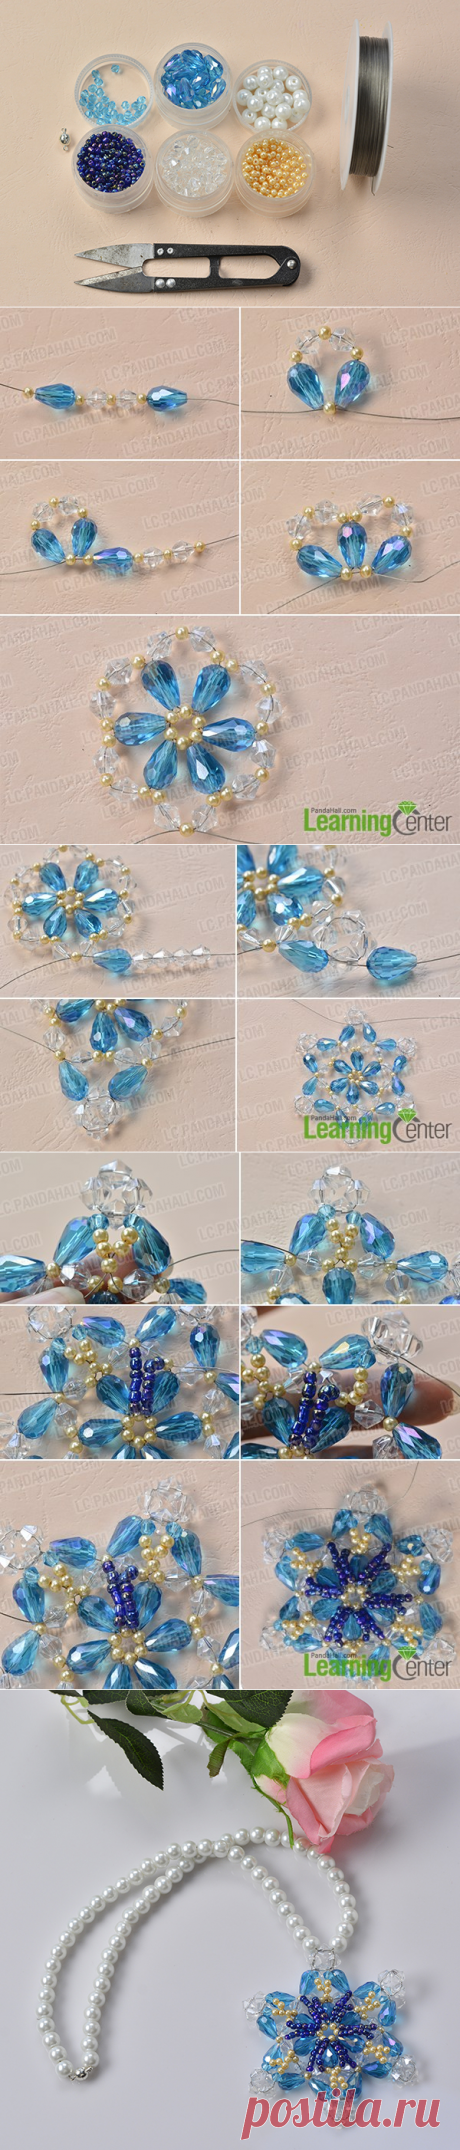 How to Make a Blue Glass Beaded Snowflake Pendent Necklace